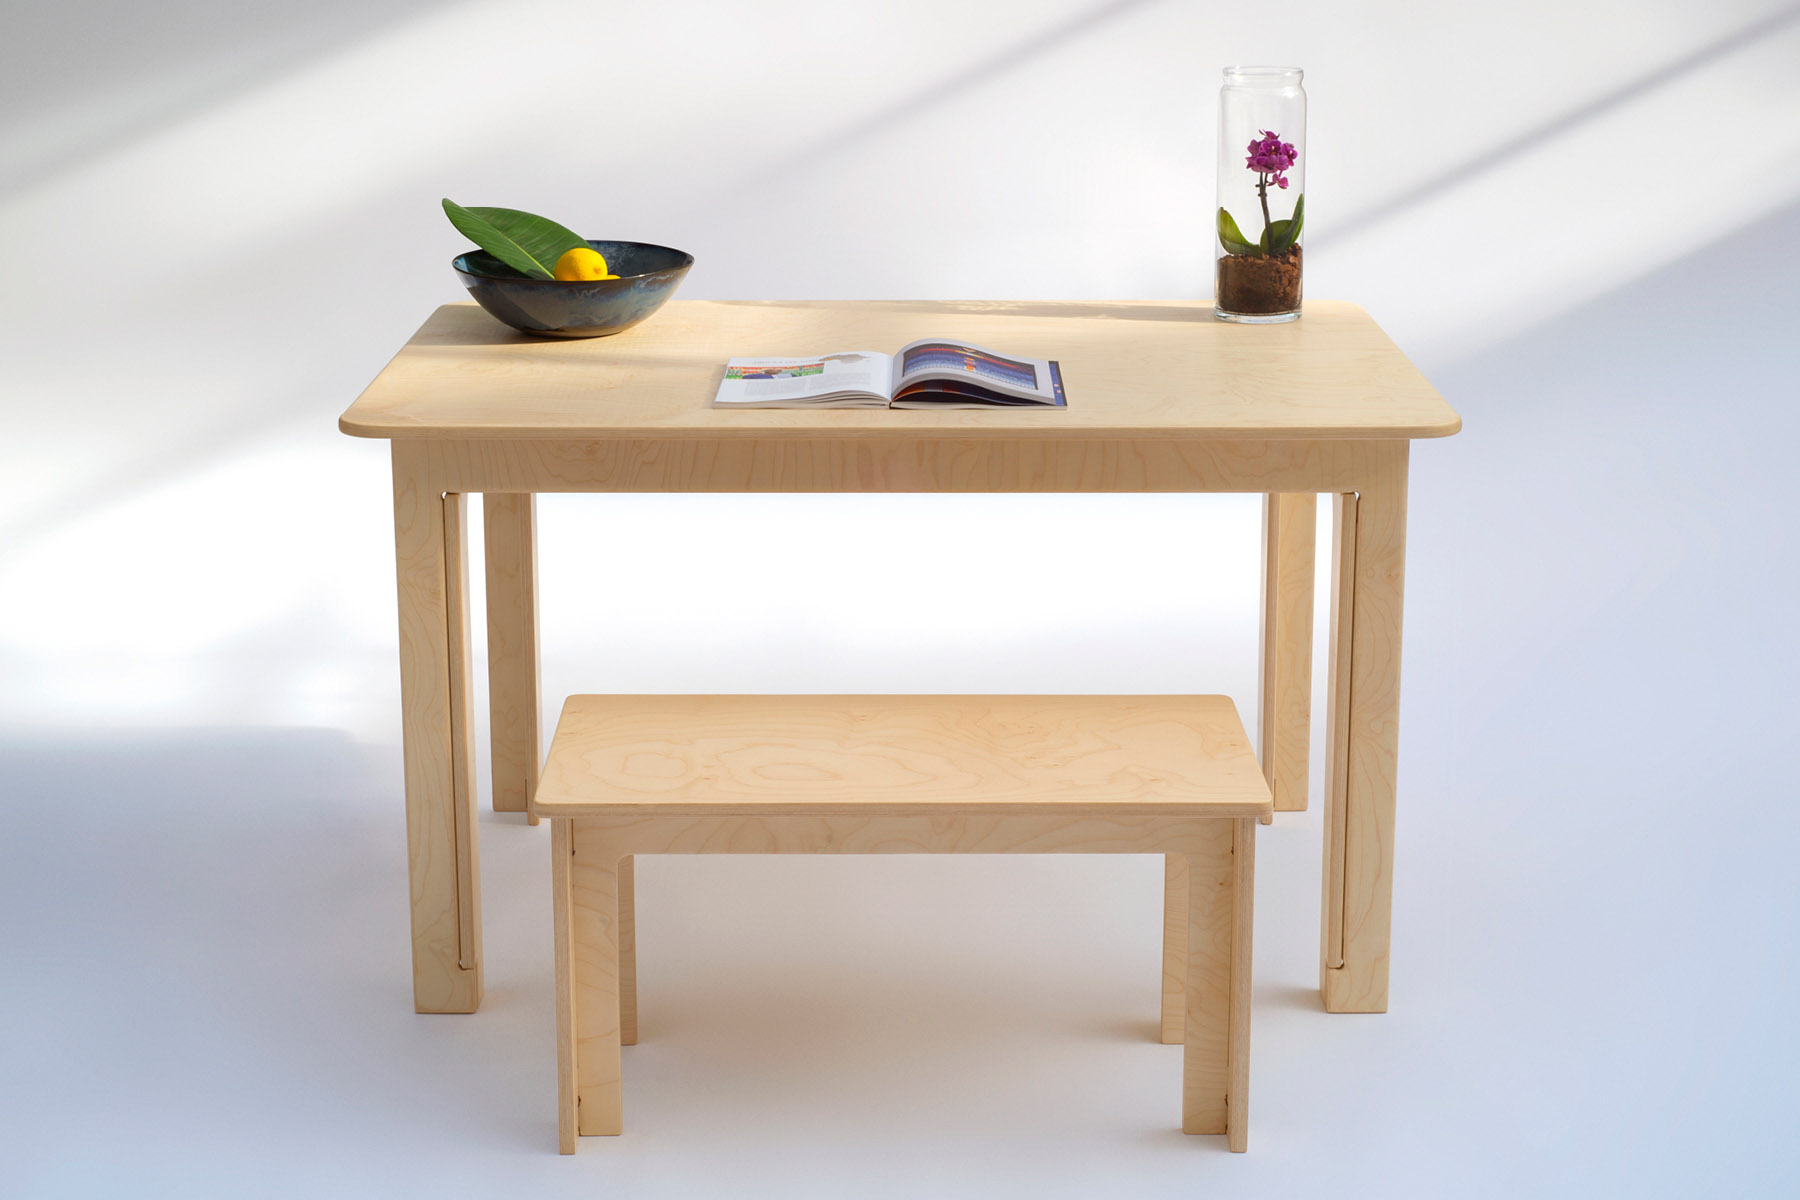 Table used as desk, with coffee table (sold separately) as bench